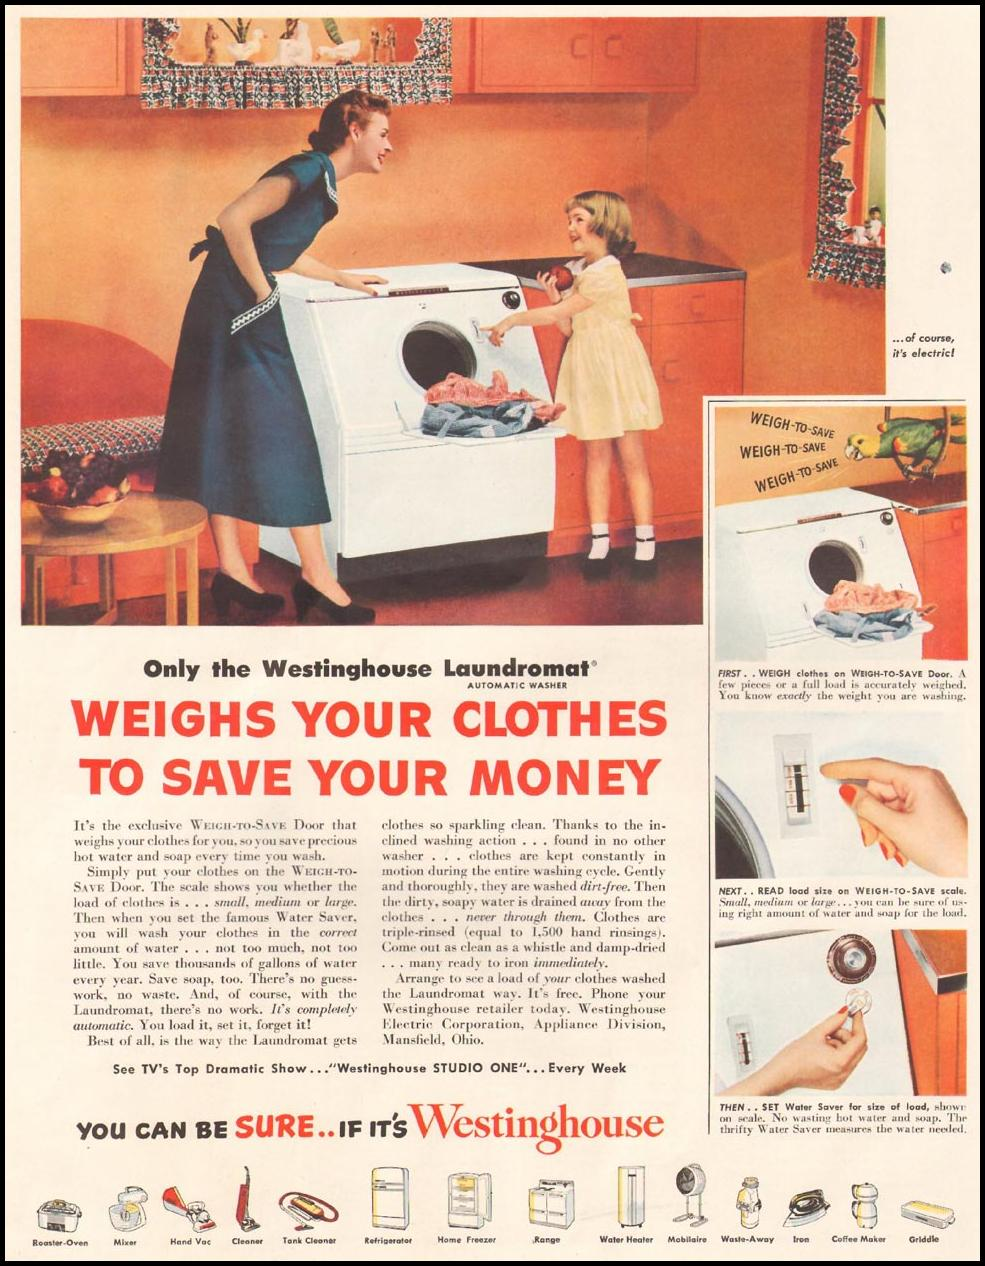 WESTINGHOUSE LAUNDROMAT WASHING MACHINE LADIES' HOME JOURNAL 11/01/1950 p. 4